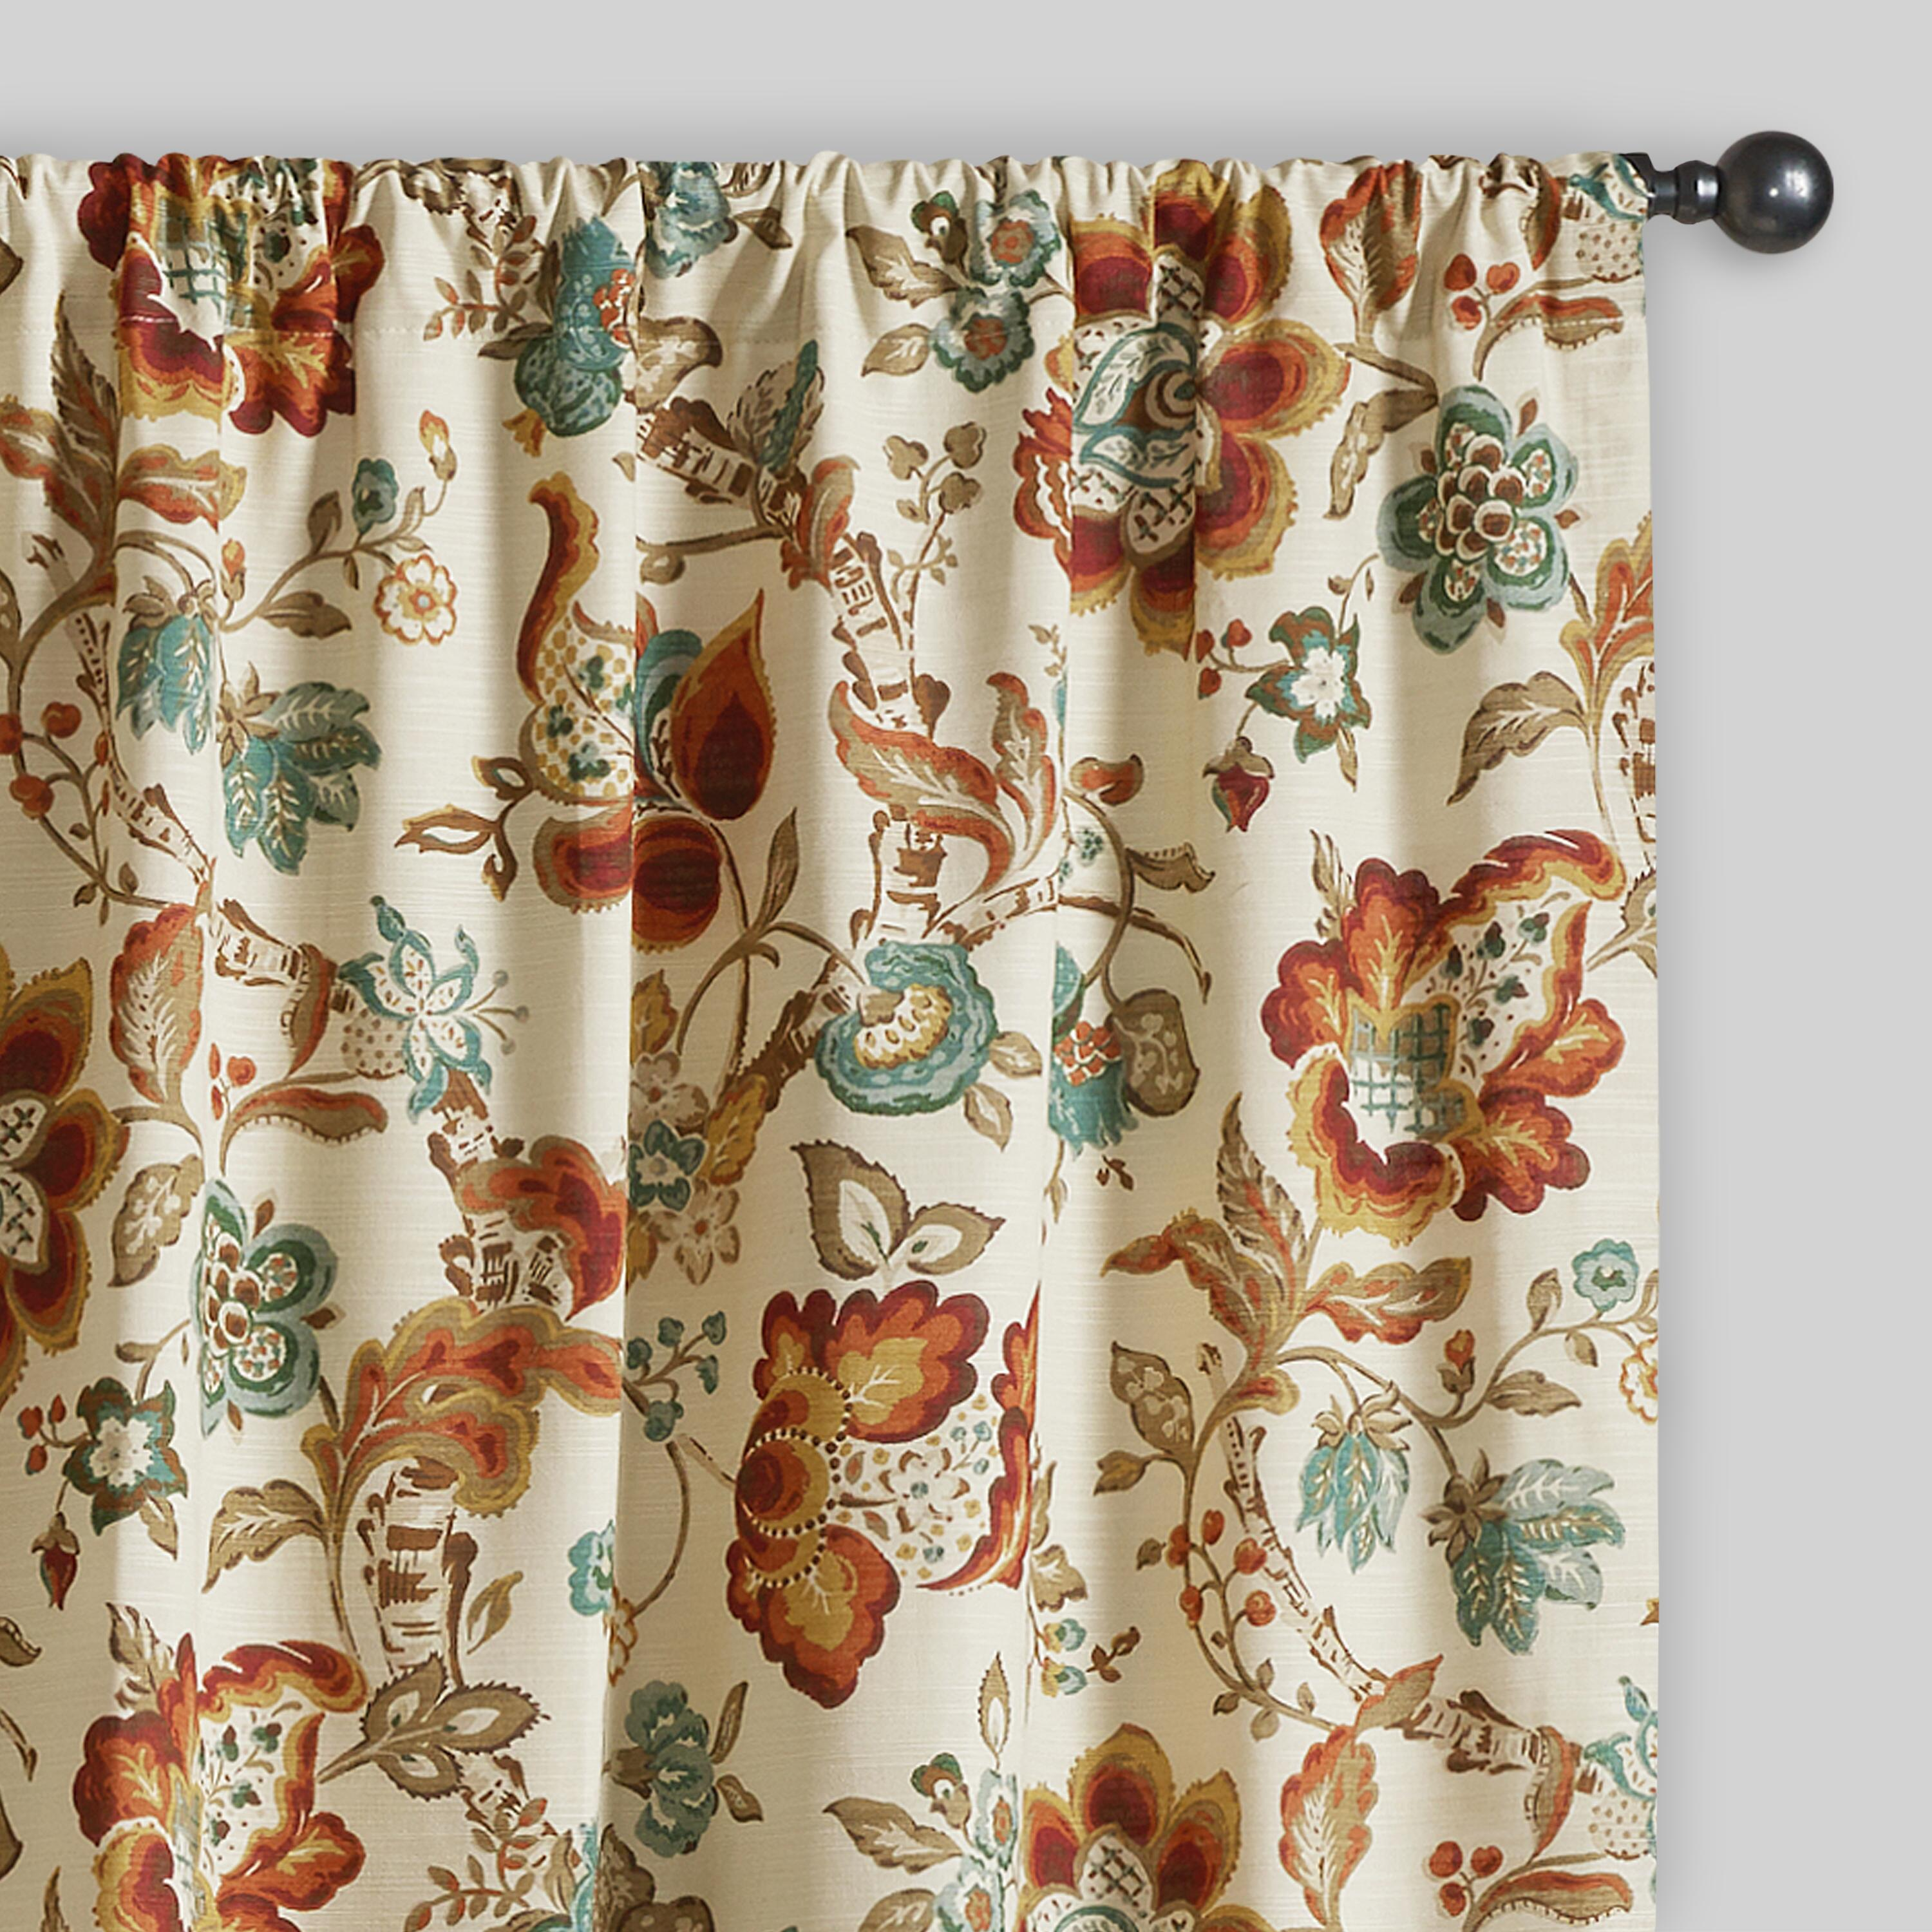 World Bazar: Multicolor Floral Malli Sleevetop Curtains, Set Of 2